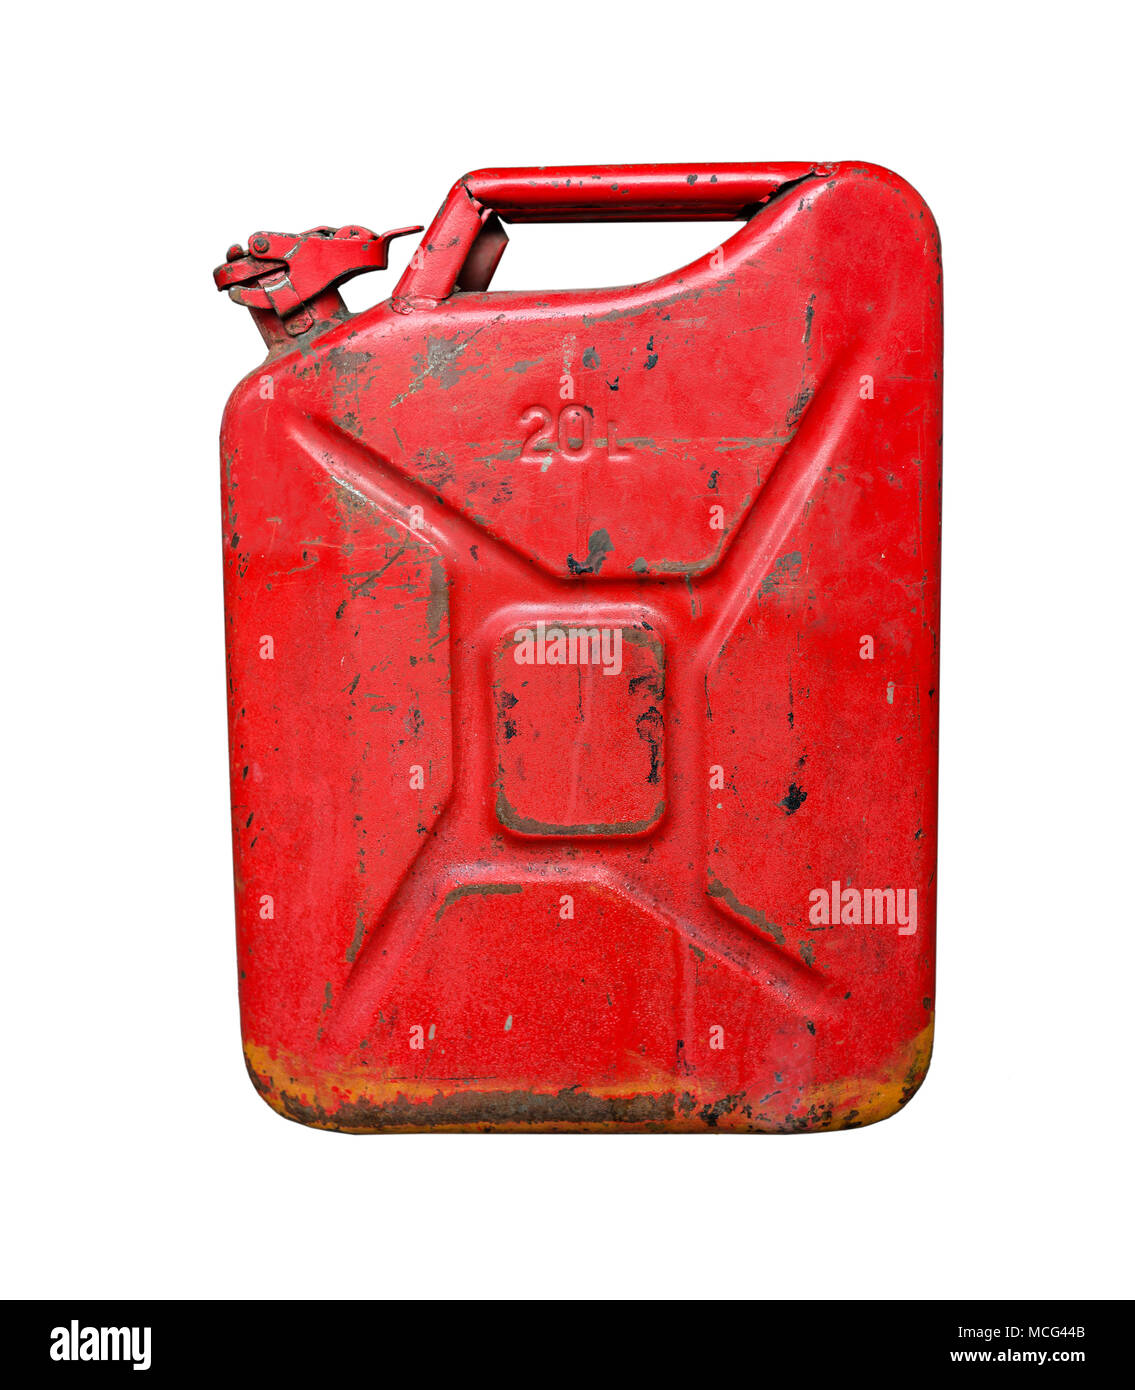 Old red metal fuel tank for transporting and storing petrol. Isolated  on a white background - Stock Image